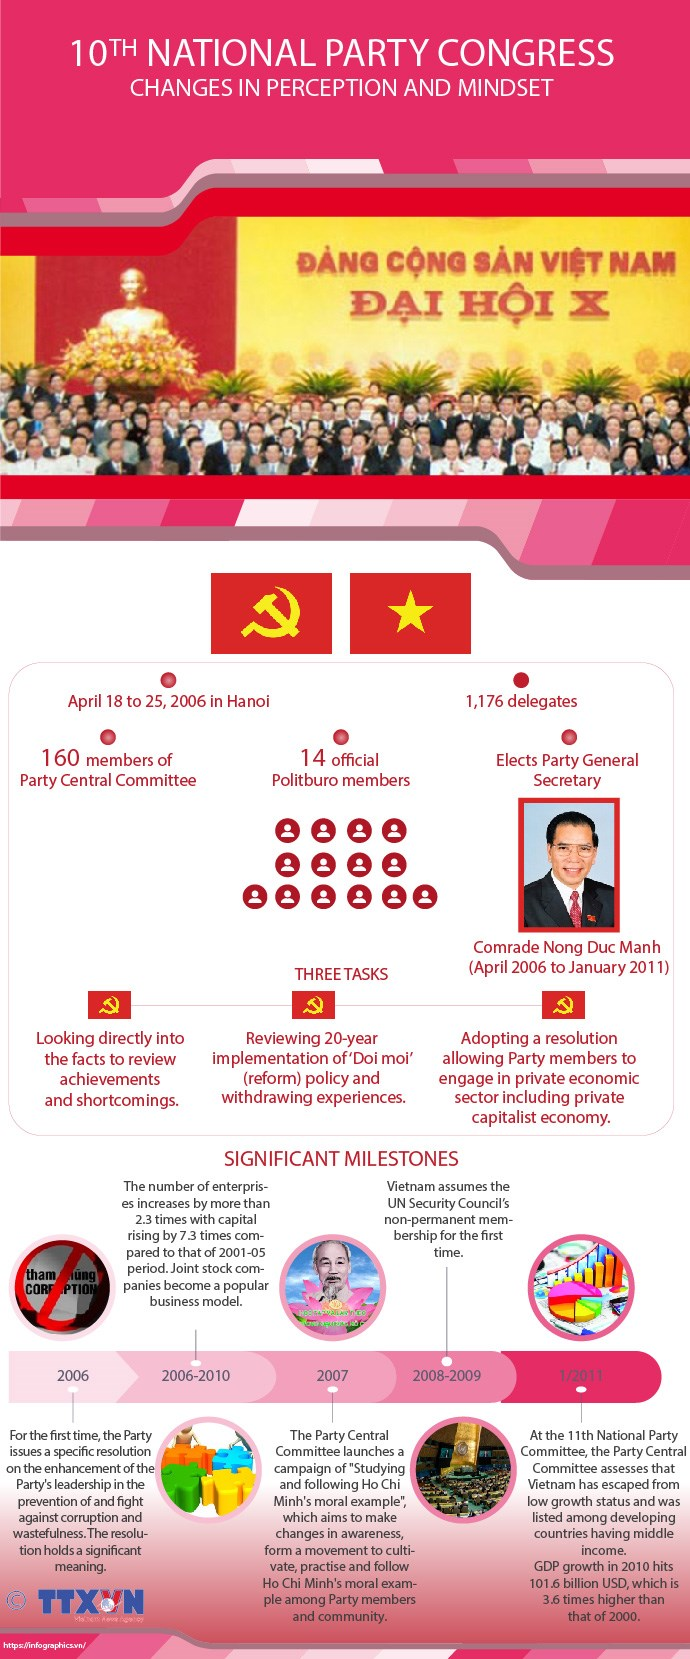 10th National Party Congress: Changes in perception and mindset hinh anh 1